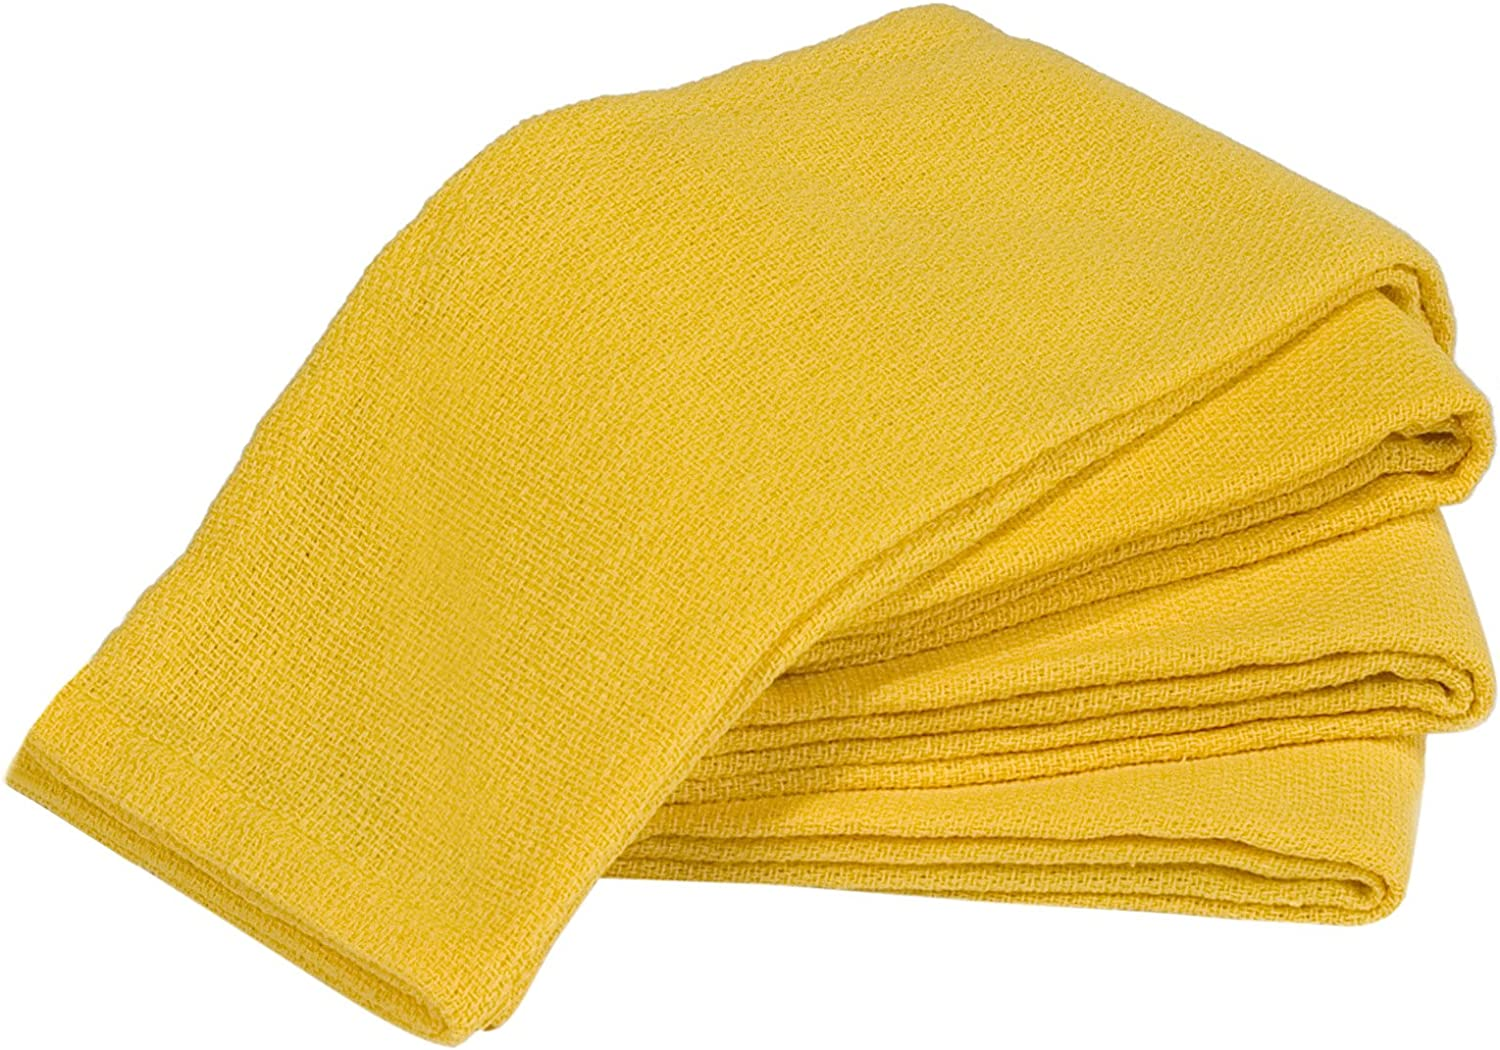 Towels By Doctor Joe New Surgical Huck Towel